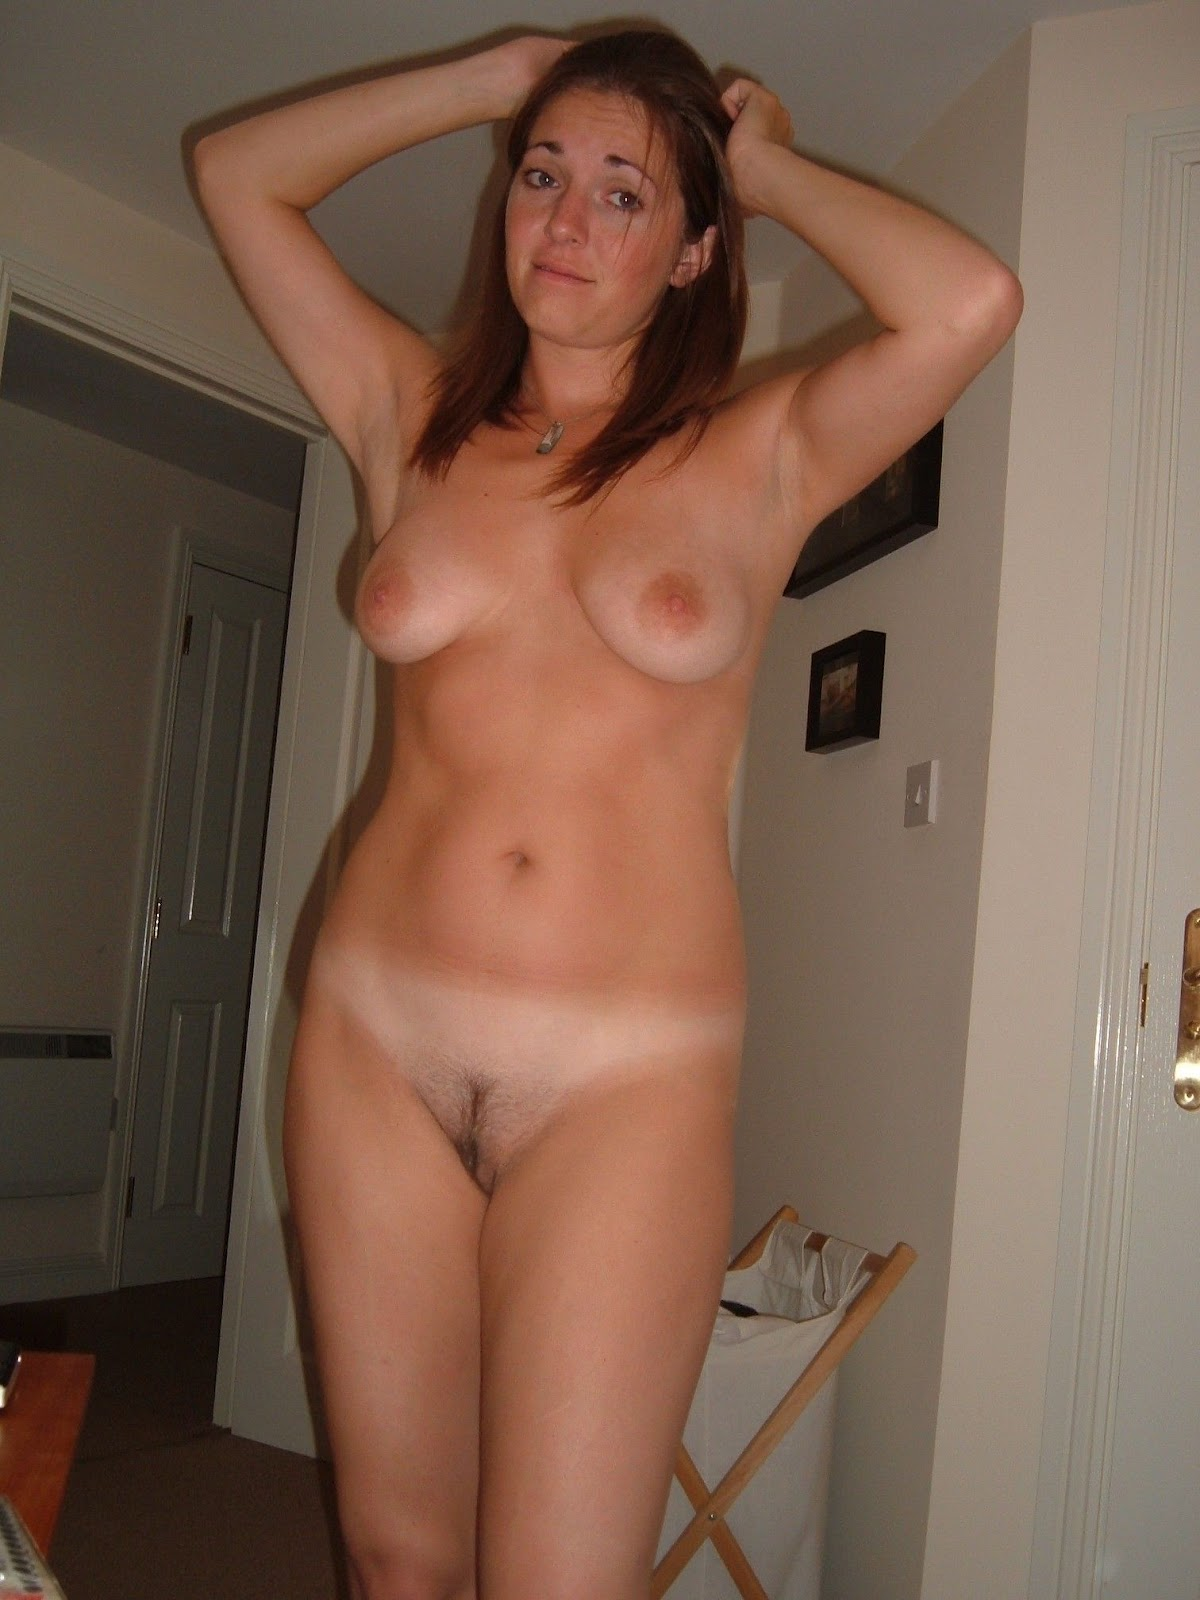 images nude wife candid woman